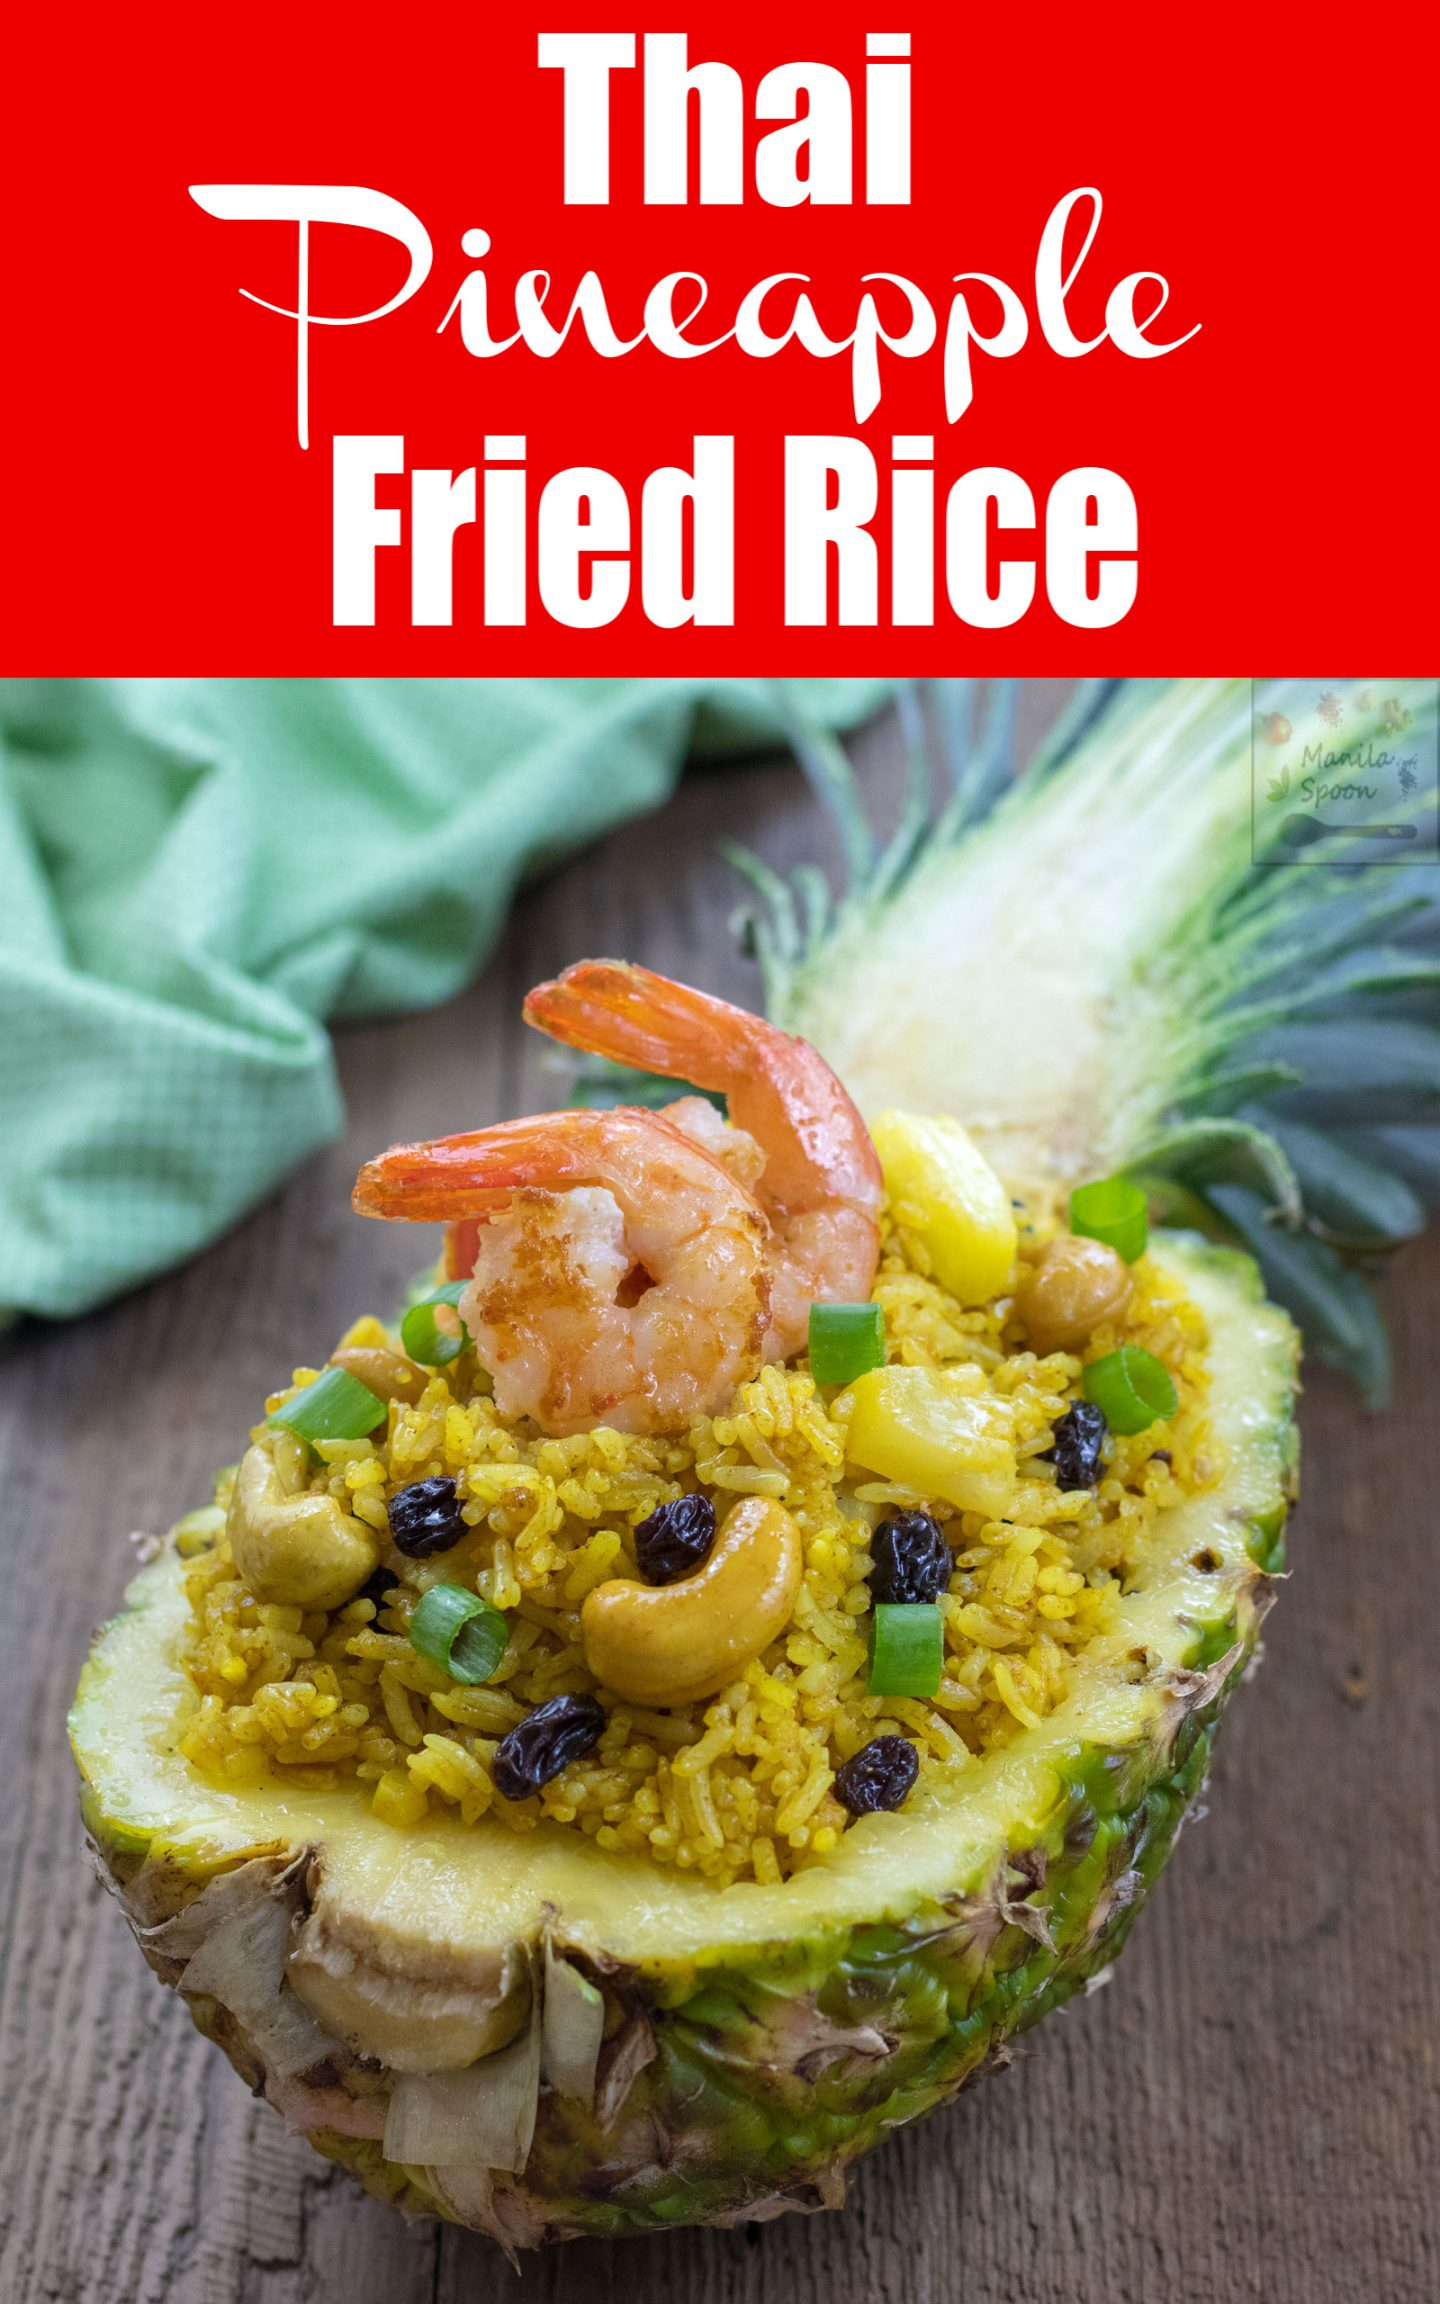 This fancy fried rice - Khao Pad Sapparot (Thai Pineapple Fried Rice) combines the flavors of pineapples, raisins and cashew nuts with a hint of curry that work together to produce an exquisite array of tastes in your mouth. If you wish to impress your family and friends, this is the rice to make! This dish can be made vegetarian but it's common to add shrimp or chicken to the dish. Often served in a hollowed-out pineapple, it is sure to please the crowd every time! #pineapplefriedrice #thaipineapplefriedrice #thaifriedrice #friedrice